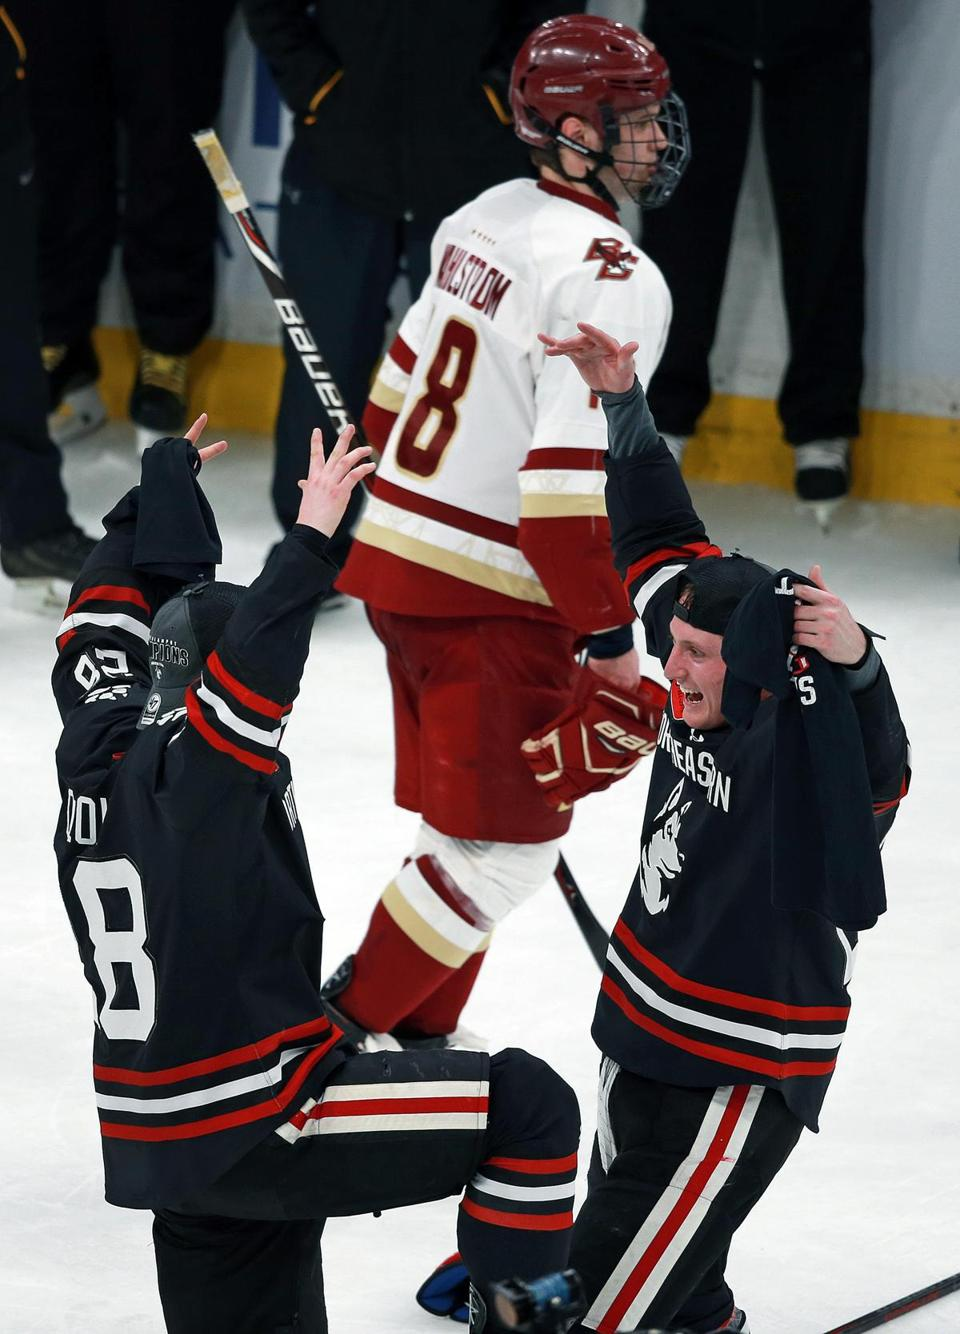 Northeastern's Zach Solow (left) and Patrick Schule rejoice as BC's Oliver Wahlstrom skates off.